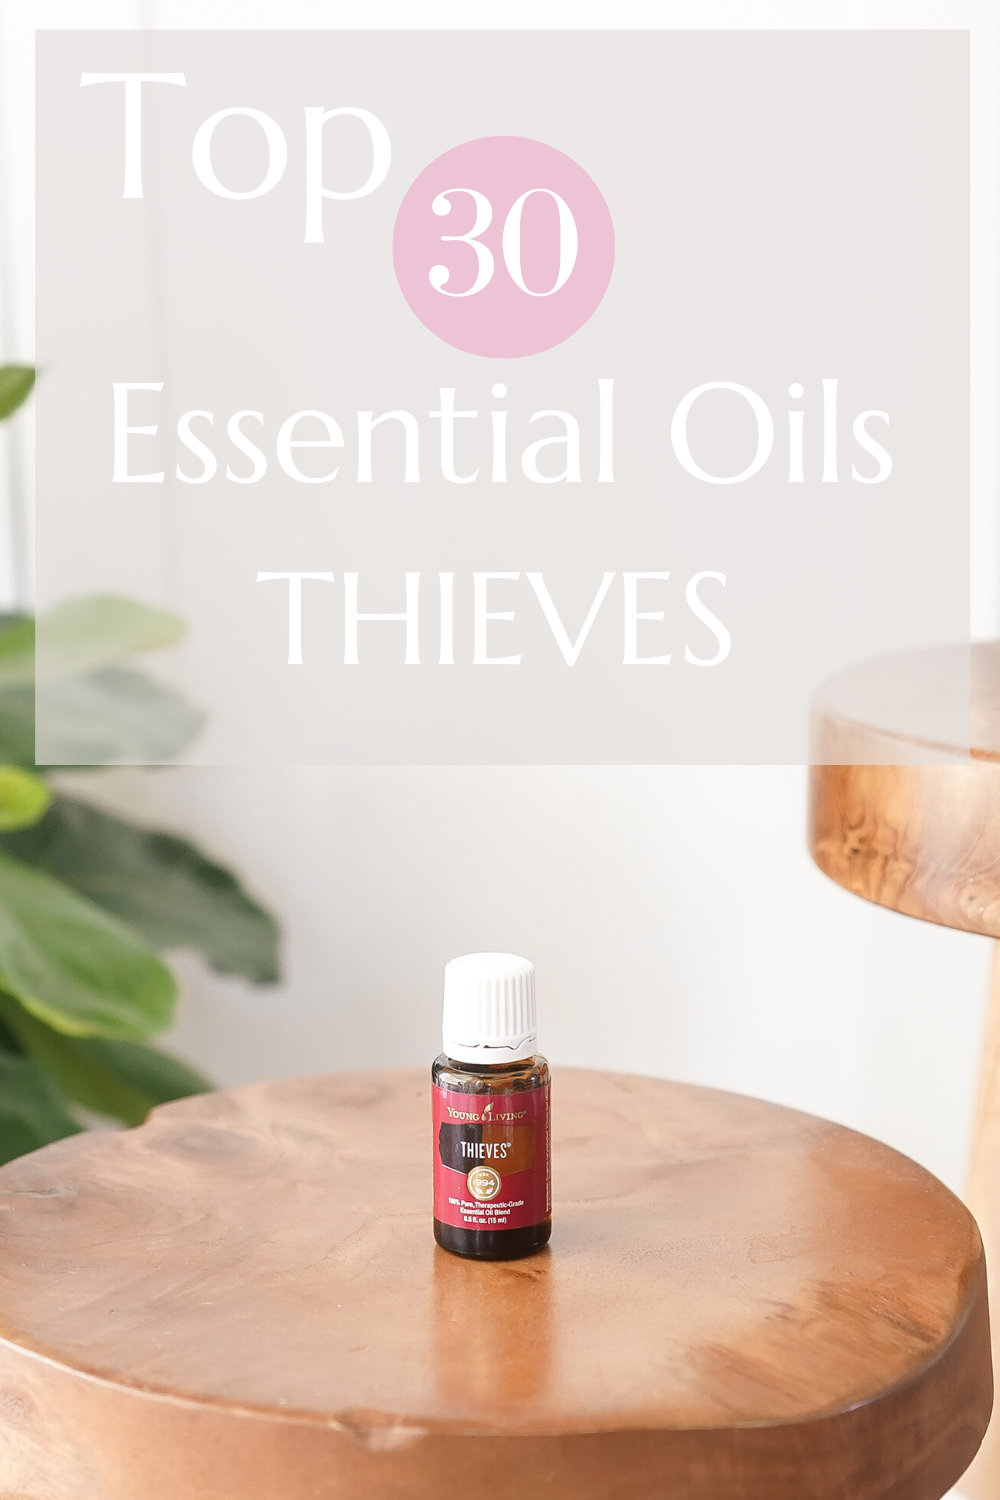 All About Thieves Essential Oil